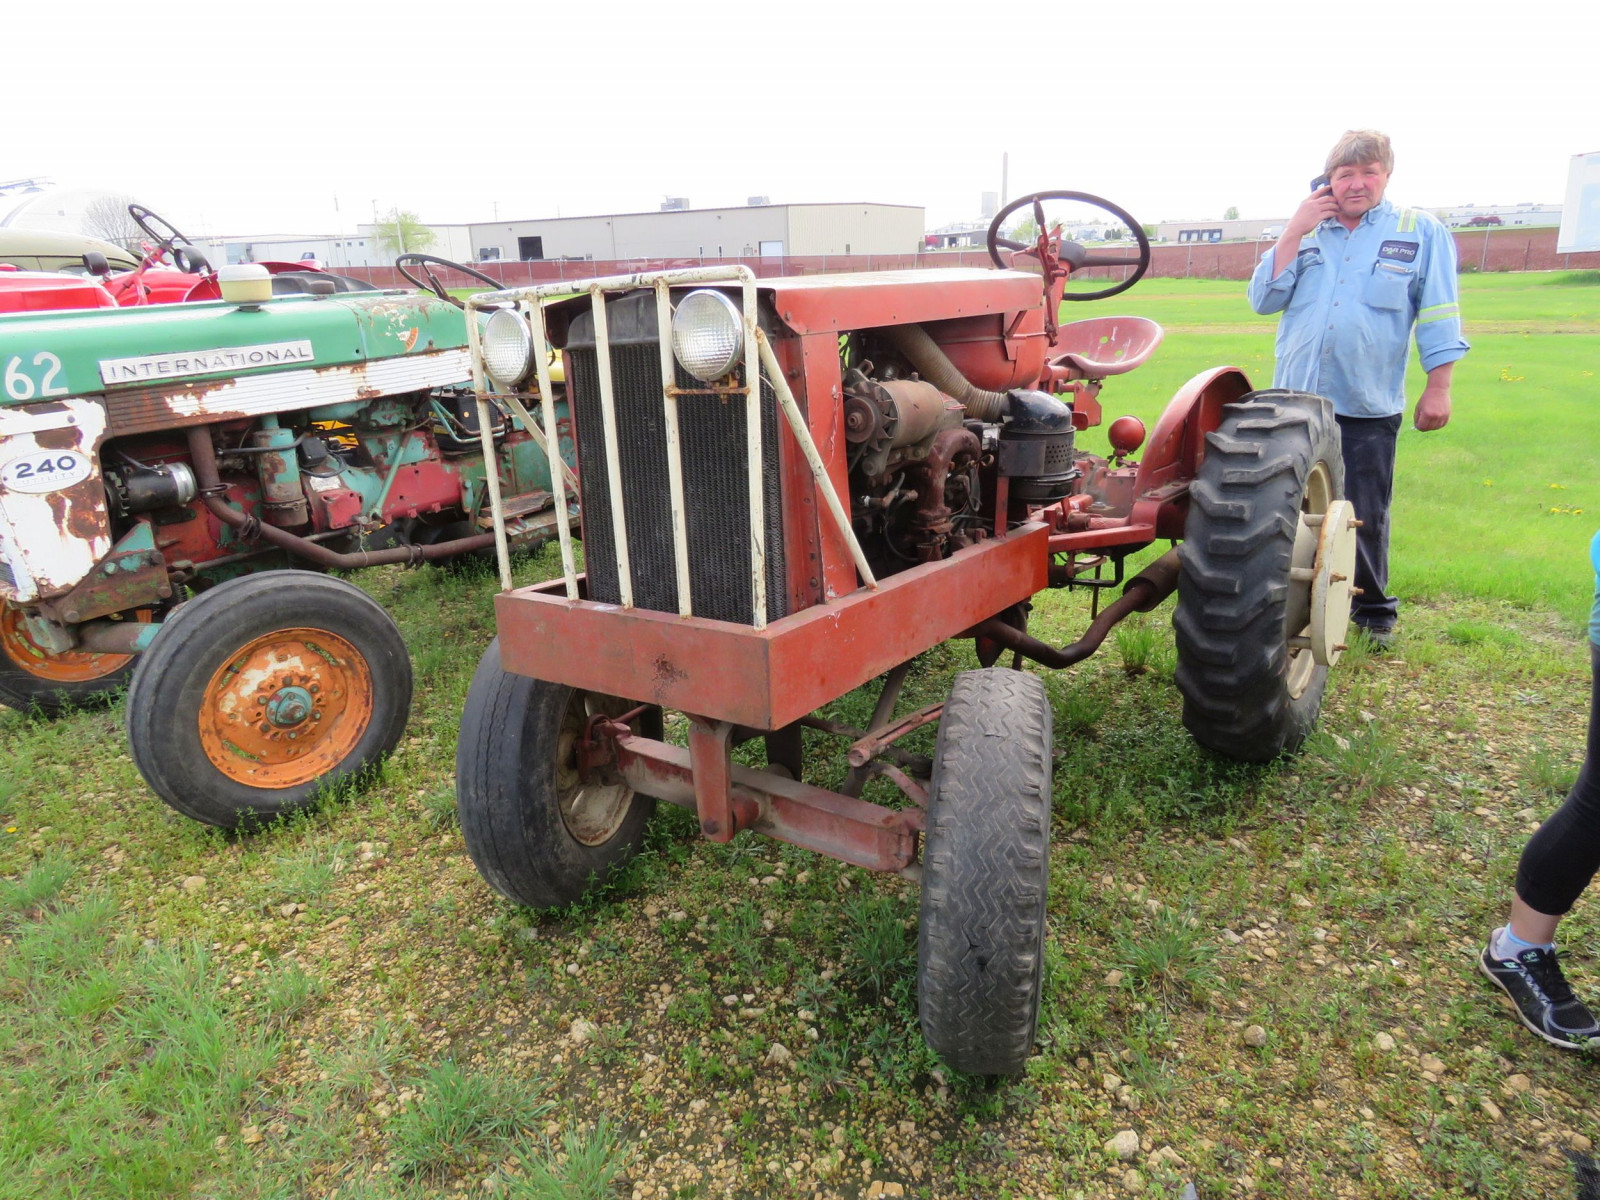 Homemade tractor - Image 1